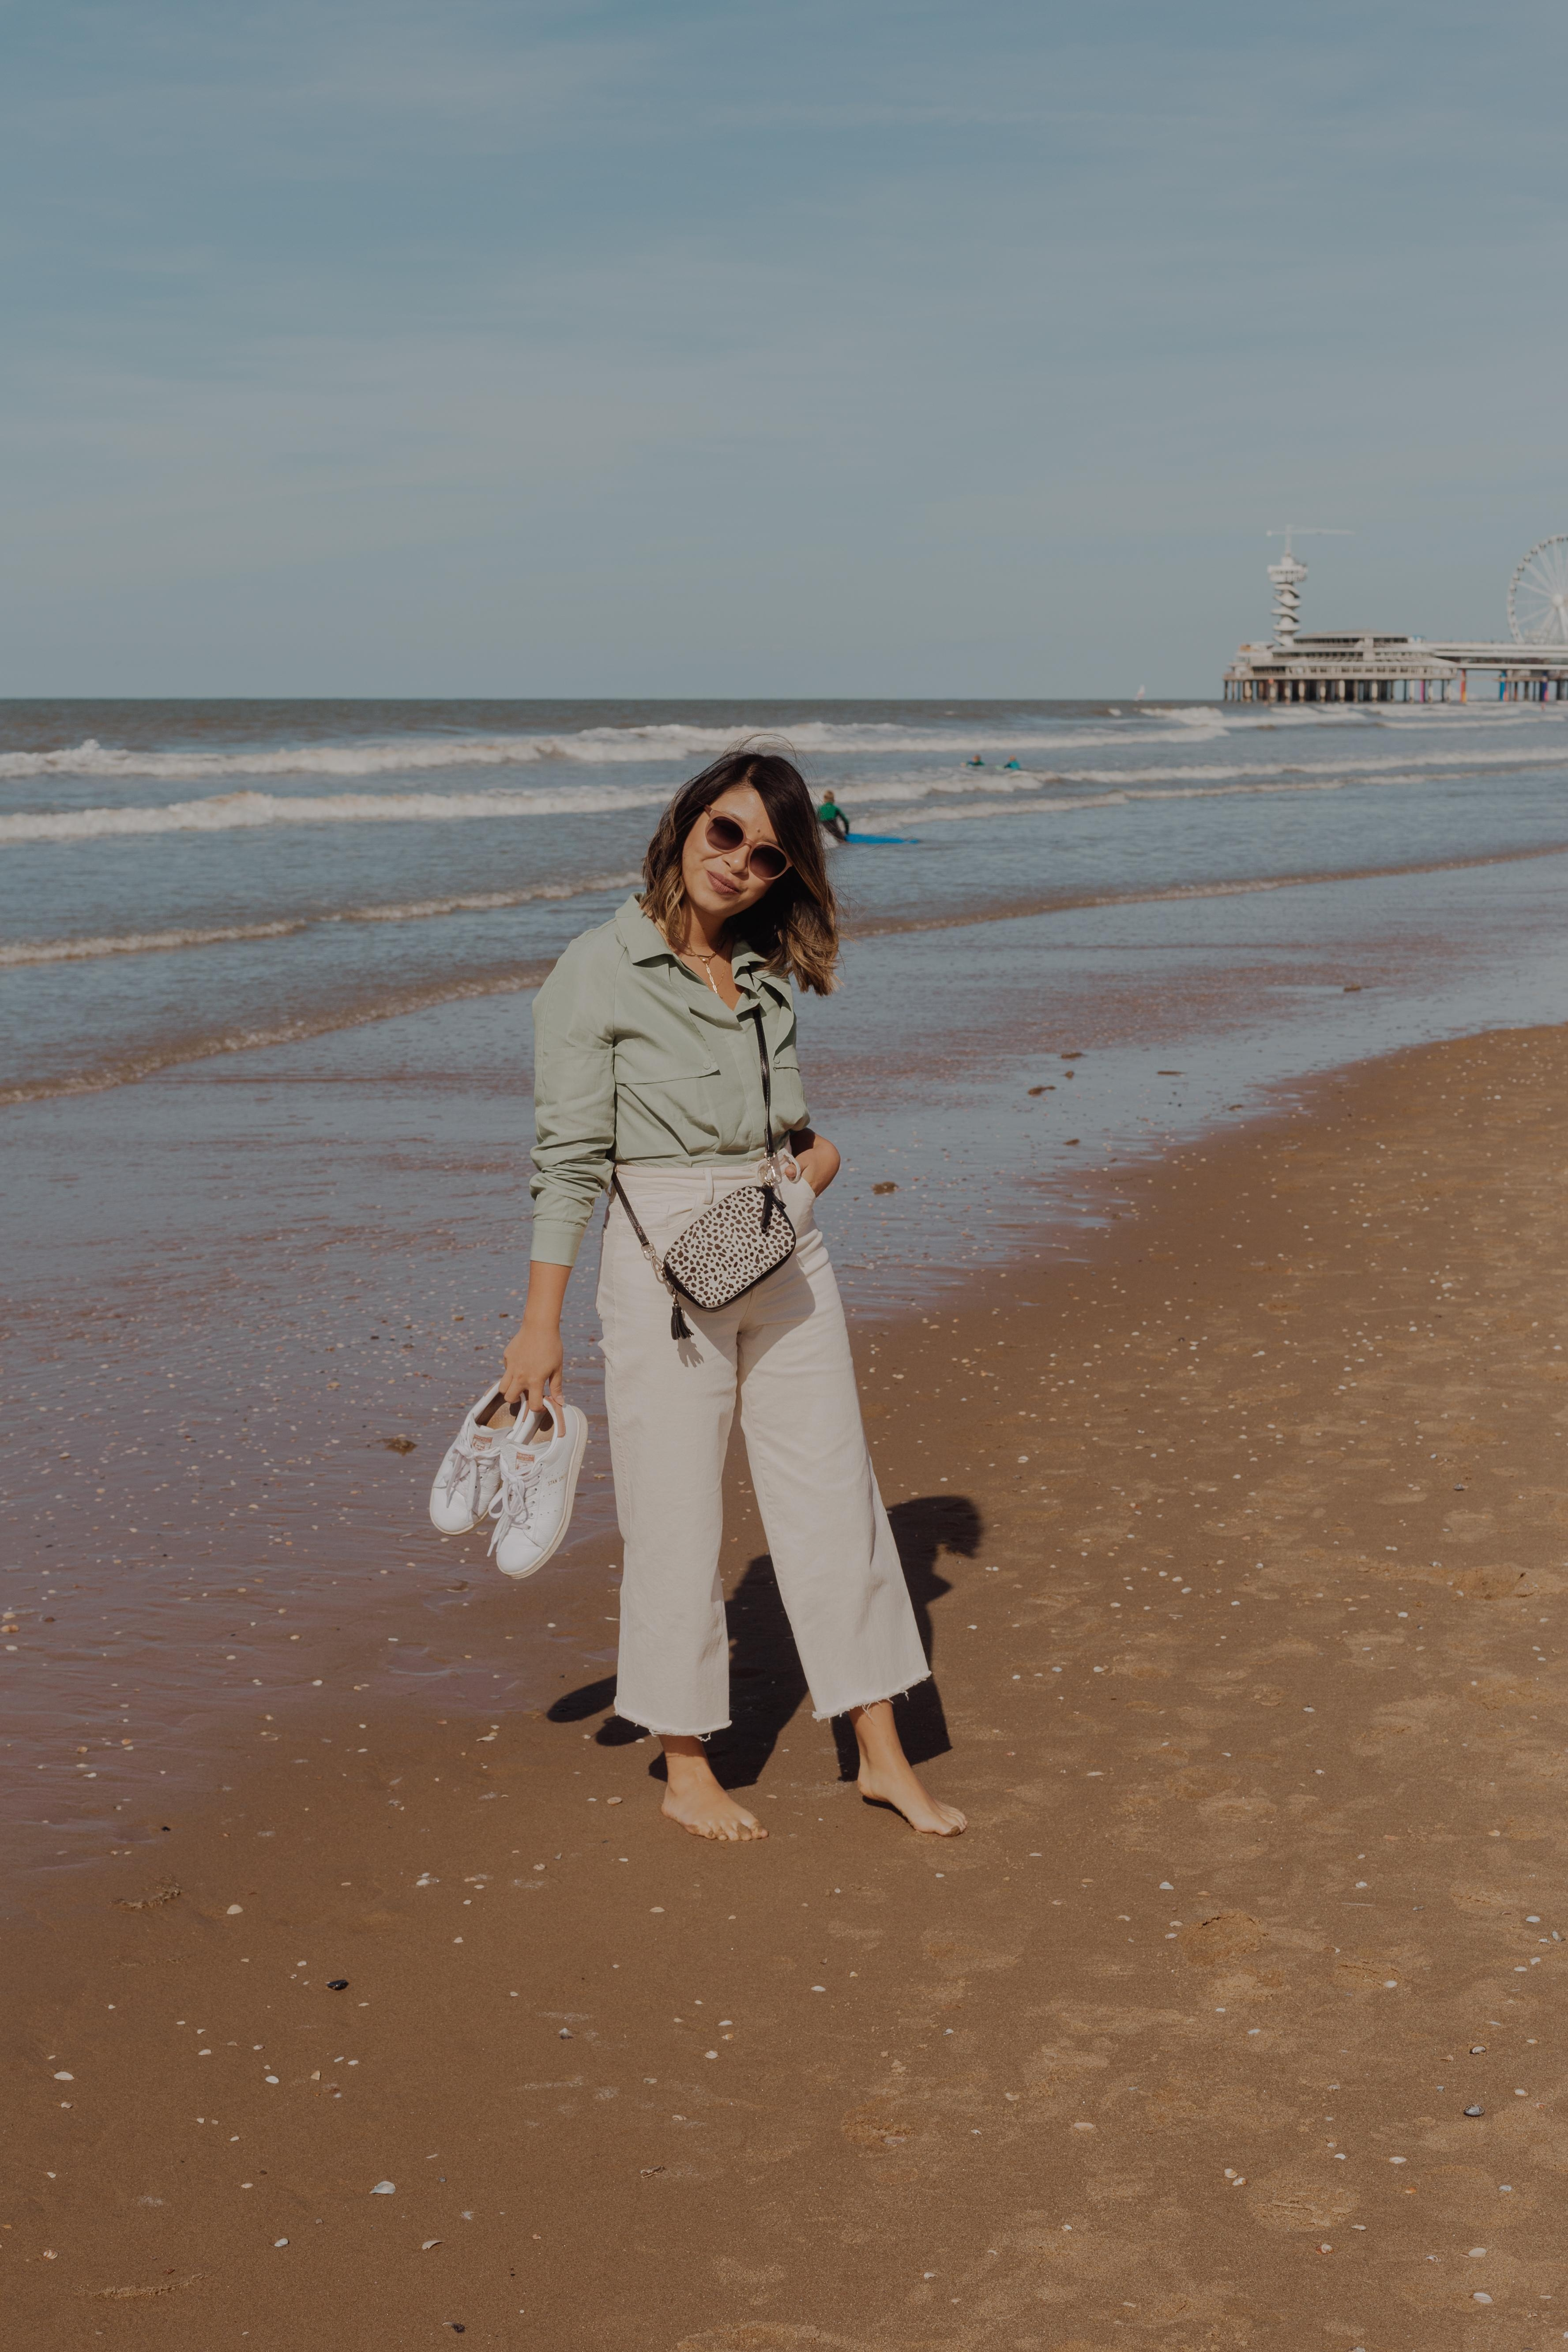 happiest when at the sea :) #ootd #holidayvibes #lifeisbetteratthebeach